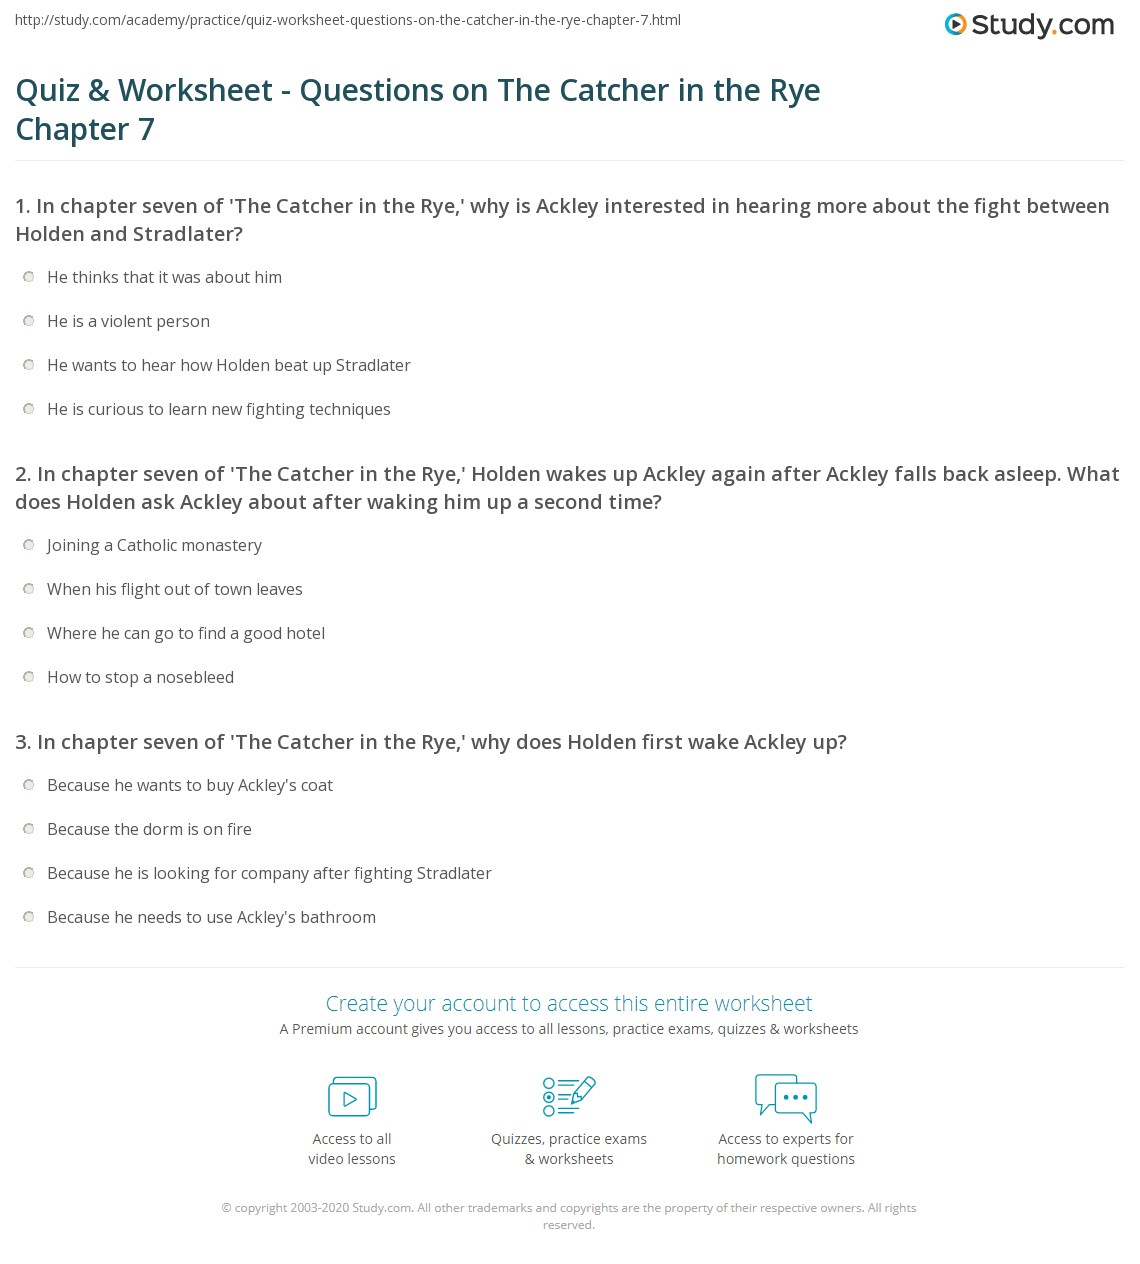 Quiz & worksheet questions on the catcher in the rye chapter 8.